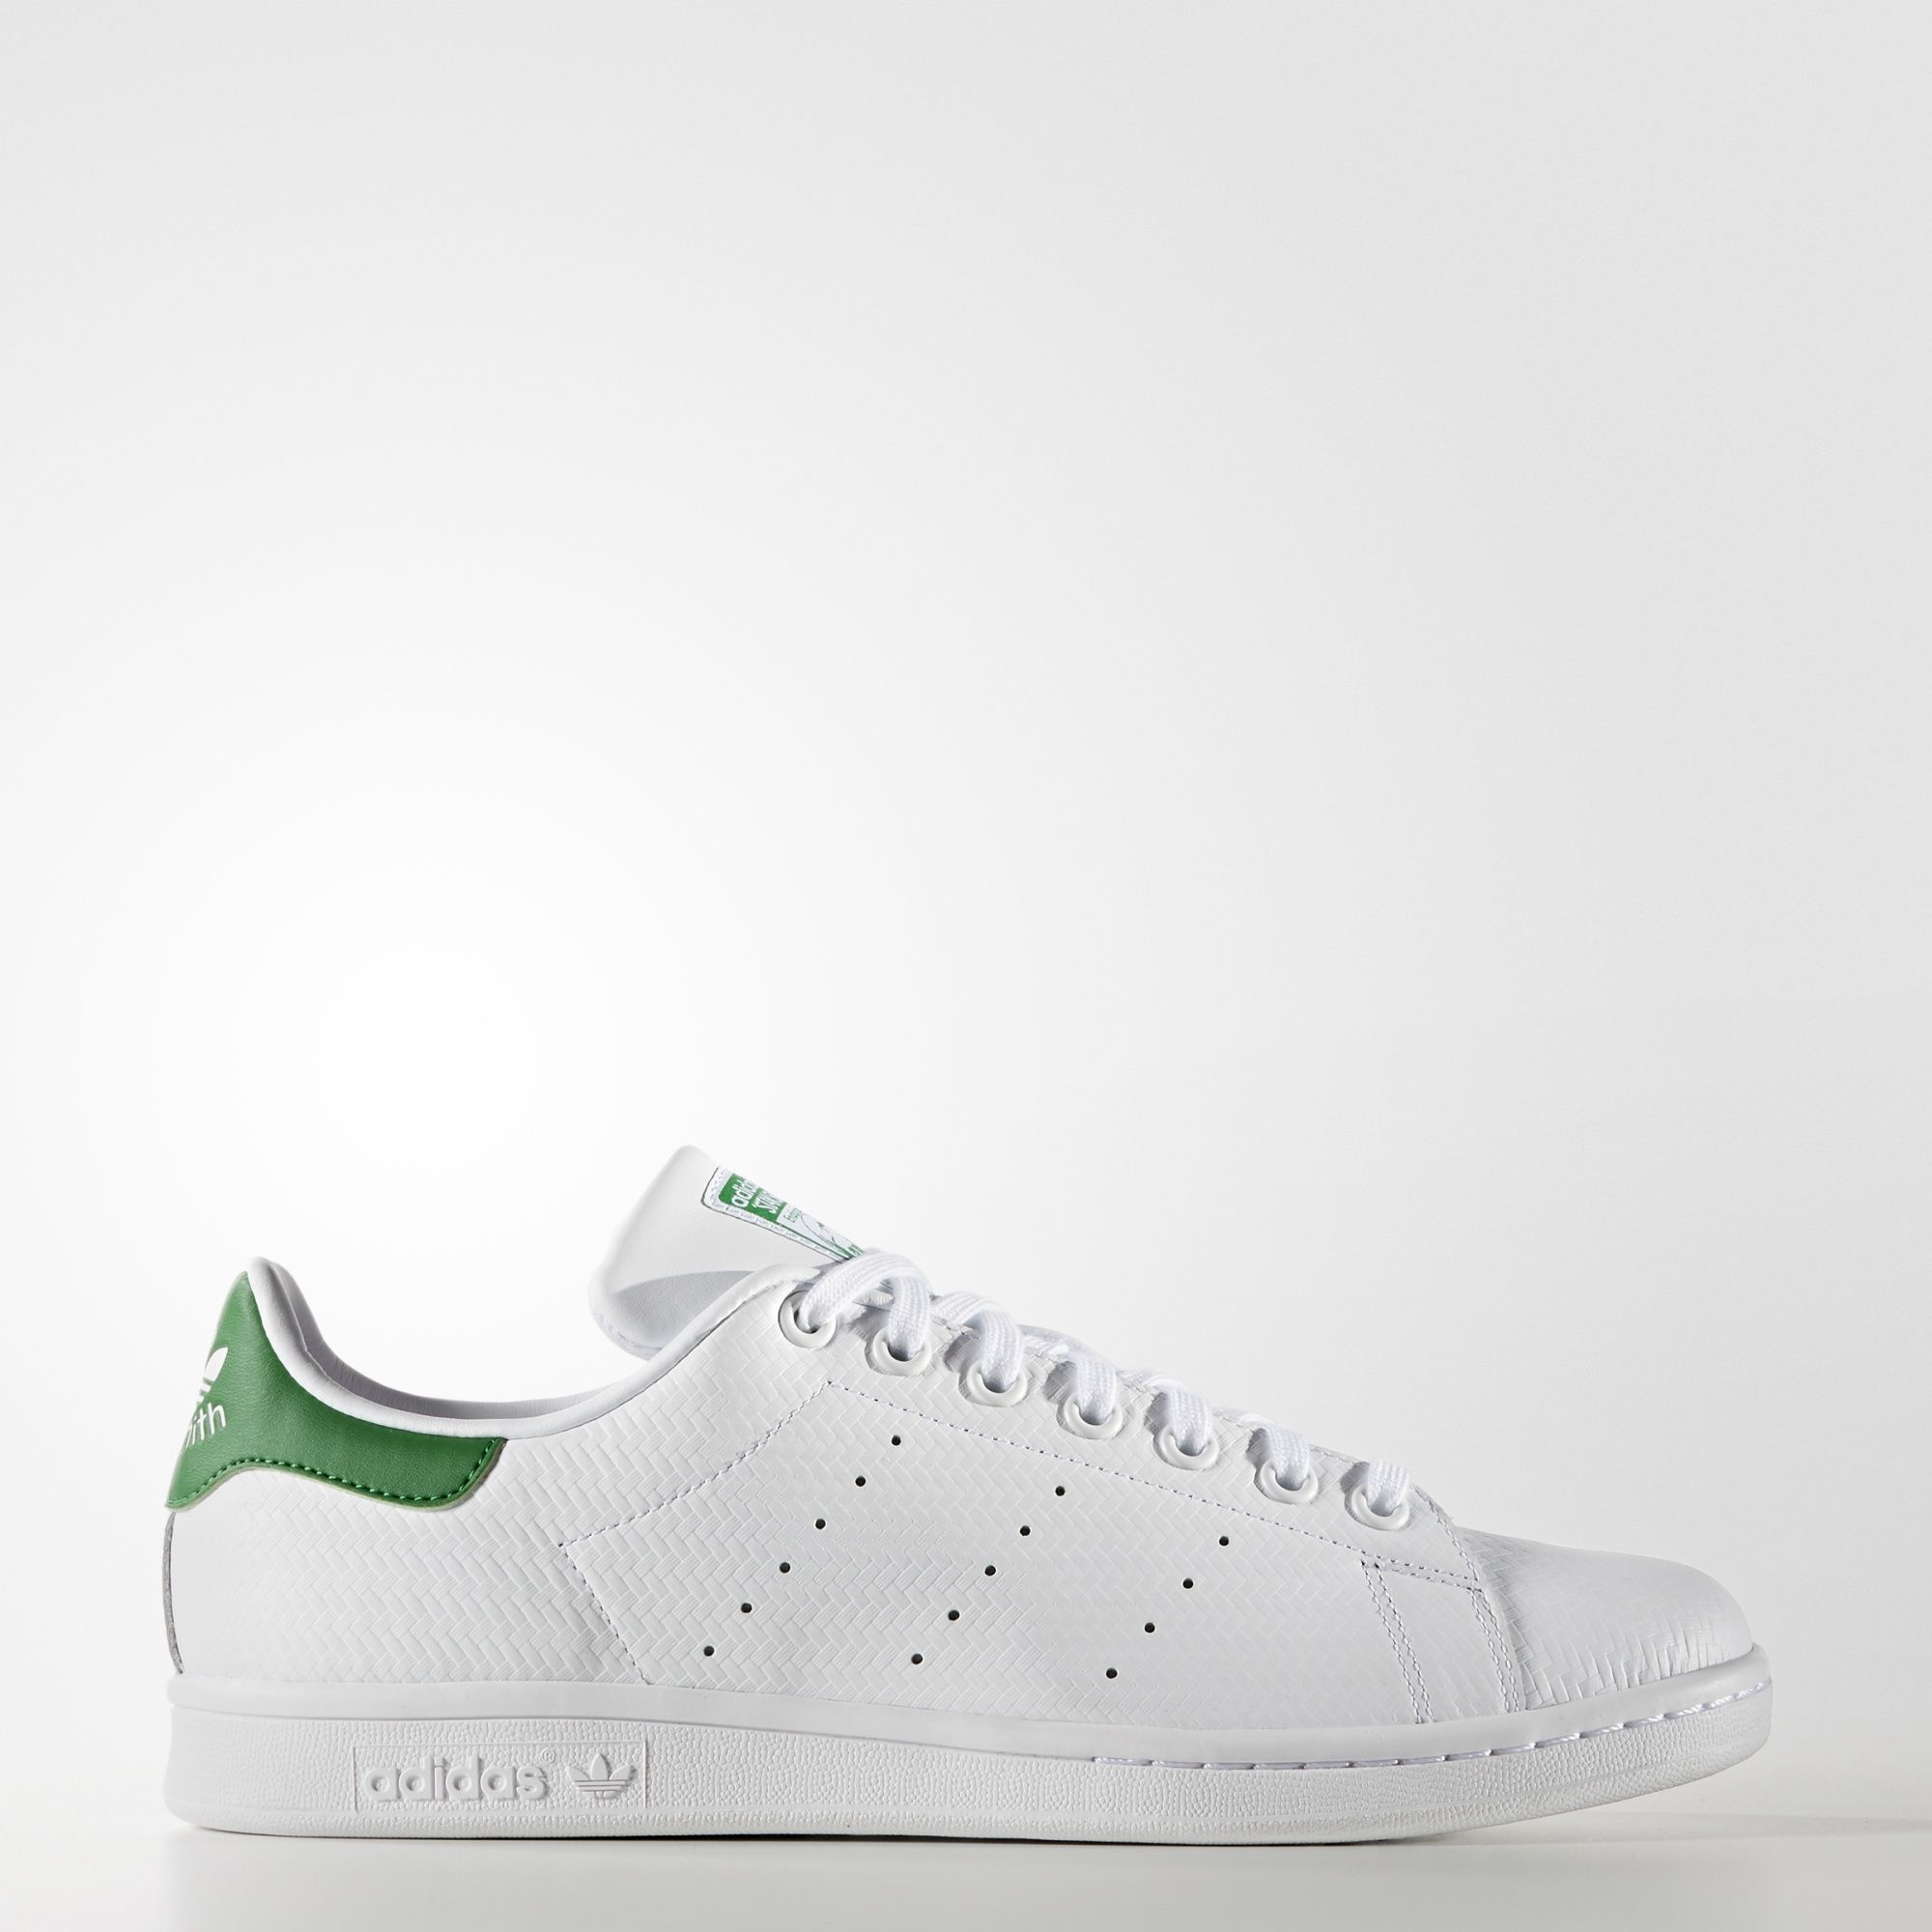 adidas chaussures mythiques